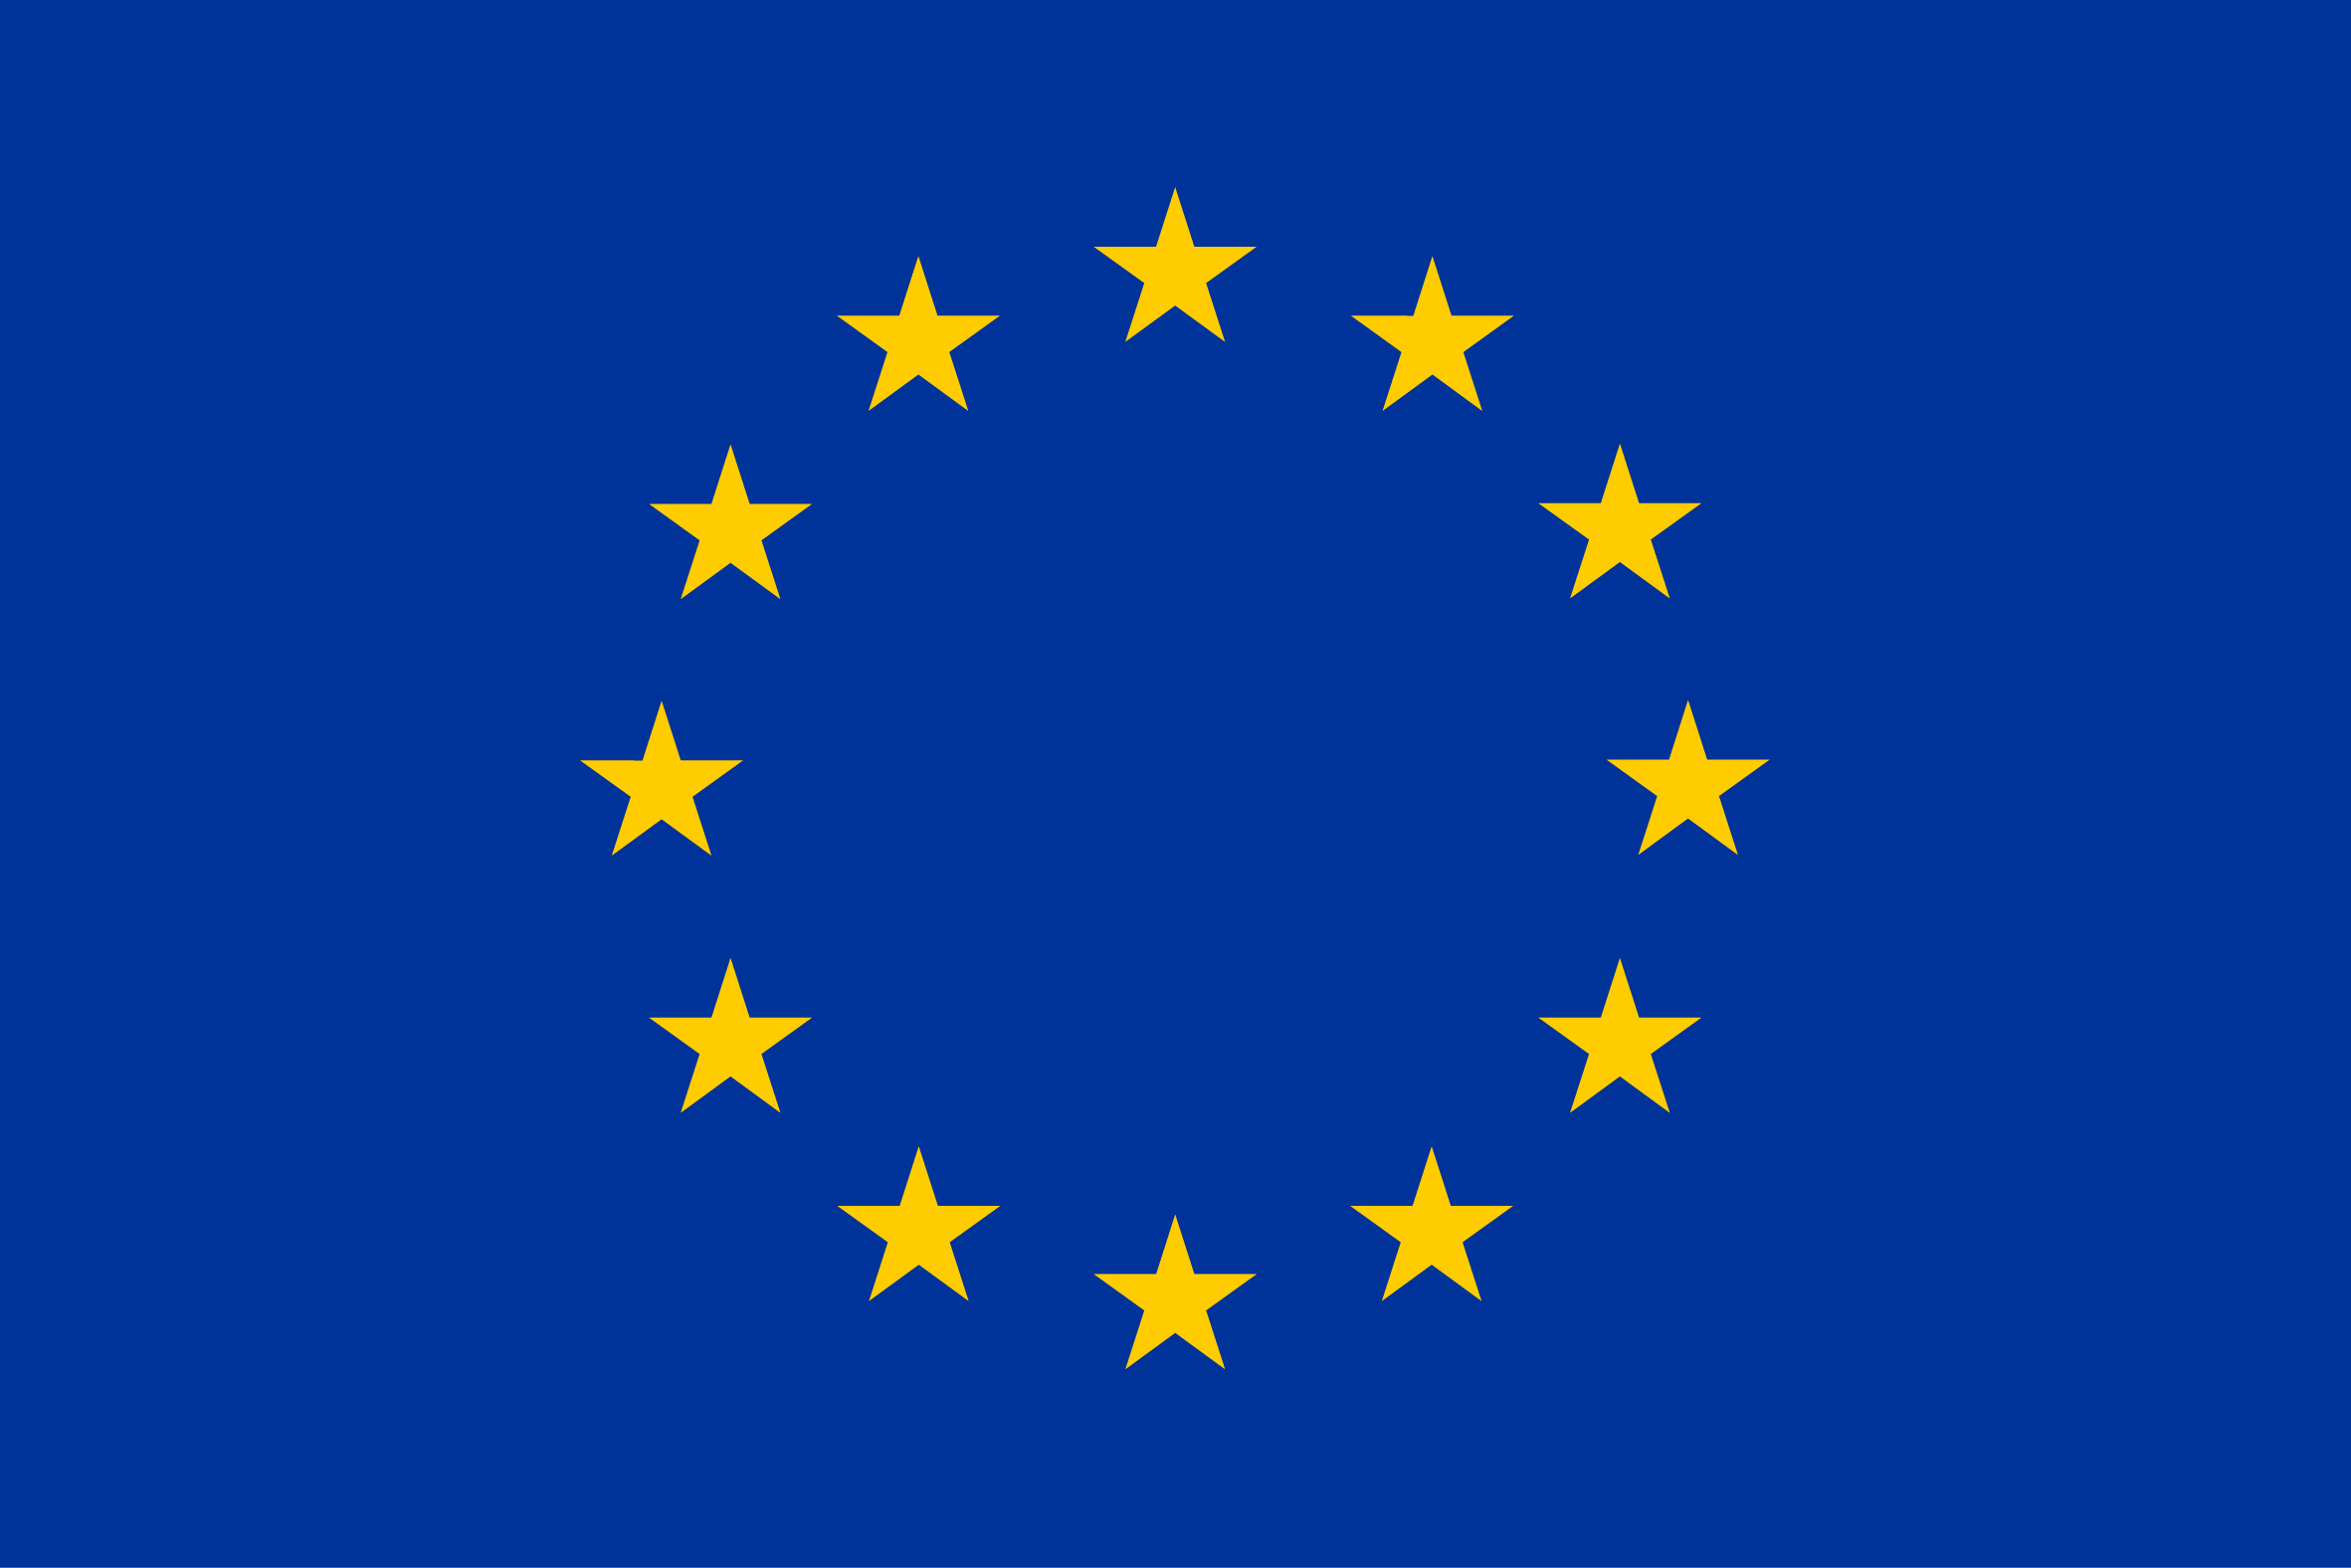 EU emblem flag yellow high